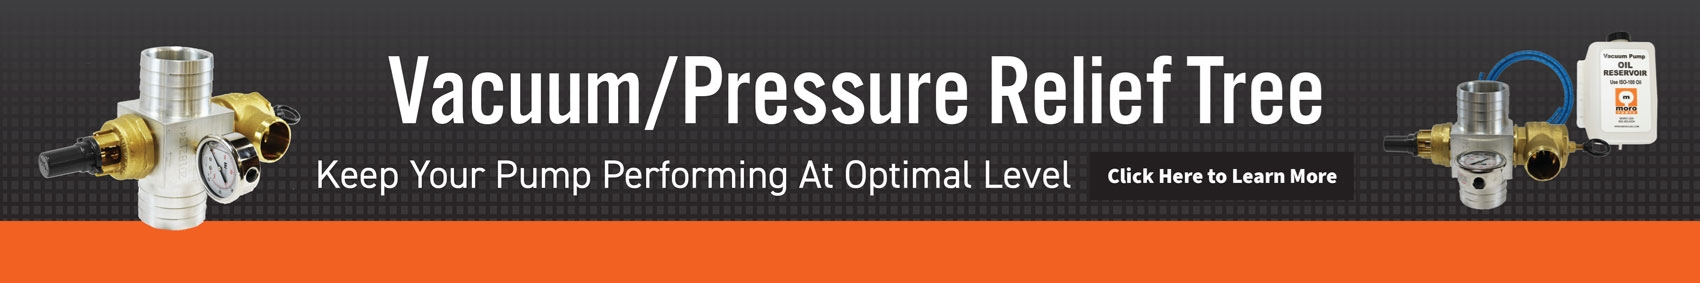 Vacuum/Pressure Relief Tree.  Keep your pump performing at optimal level.  Click here to learn more.